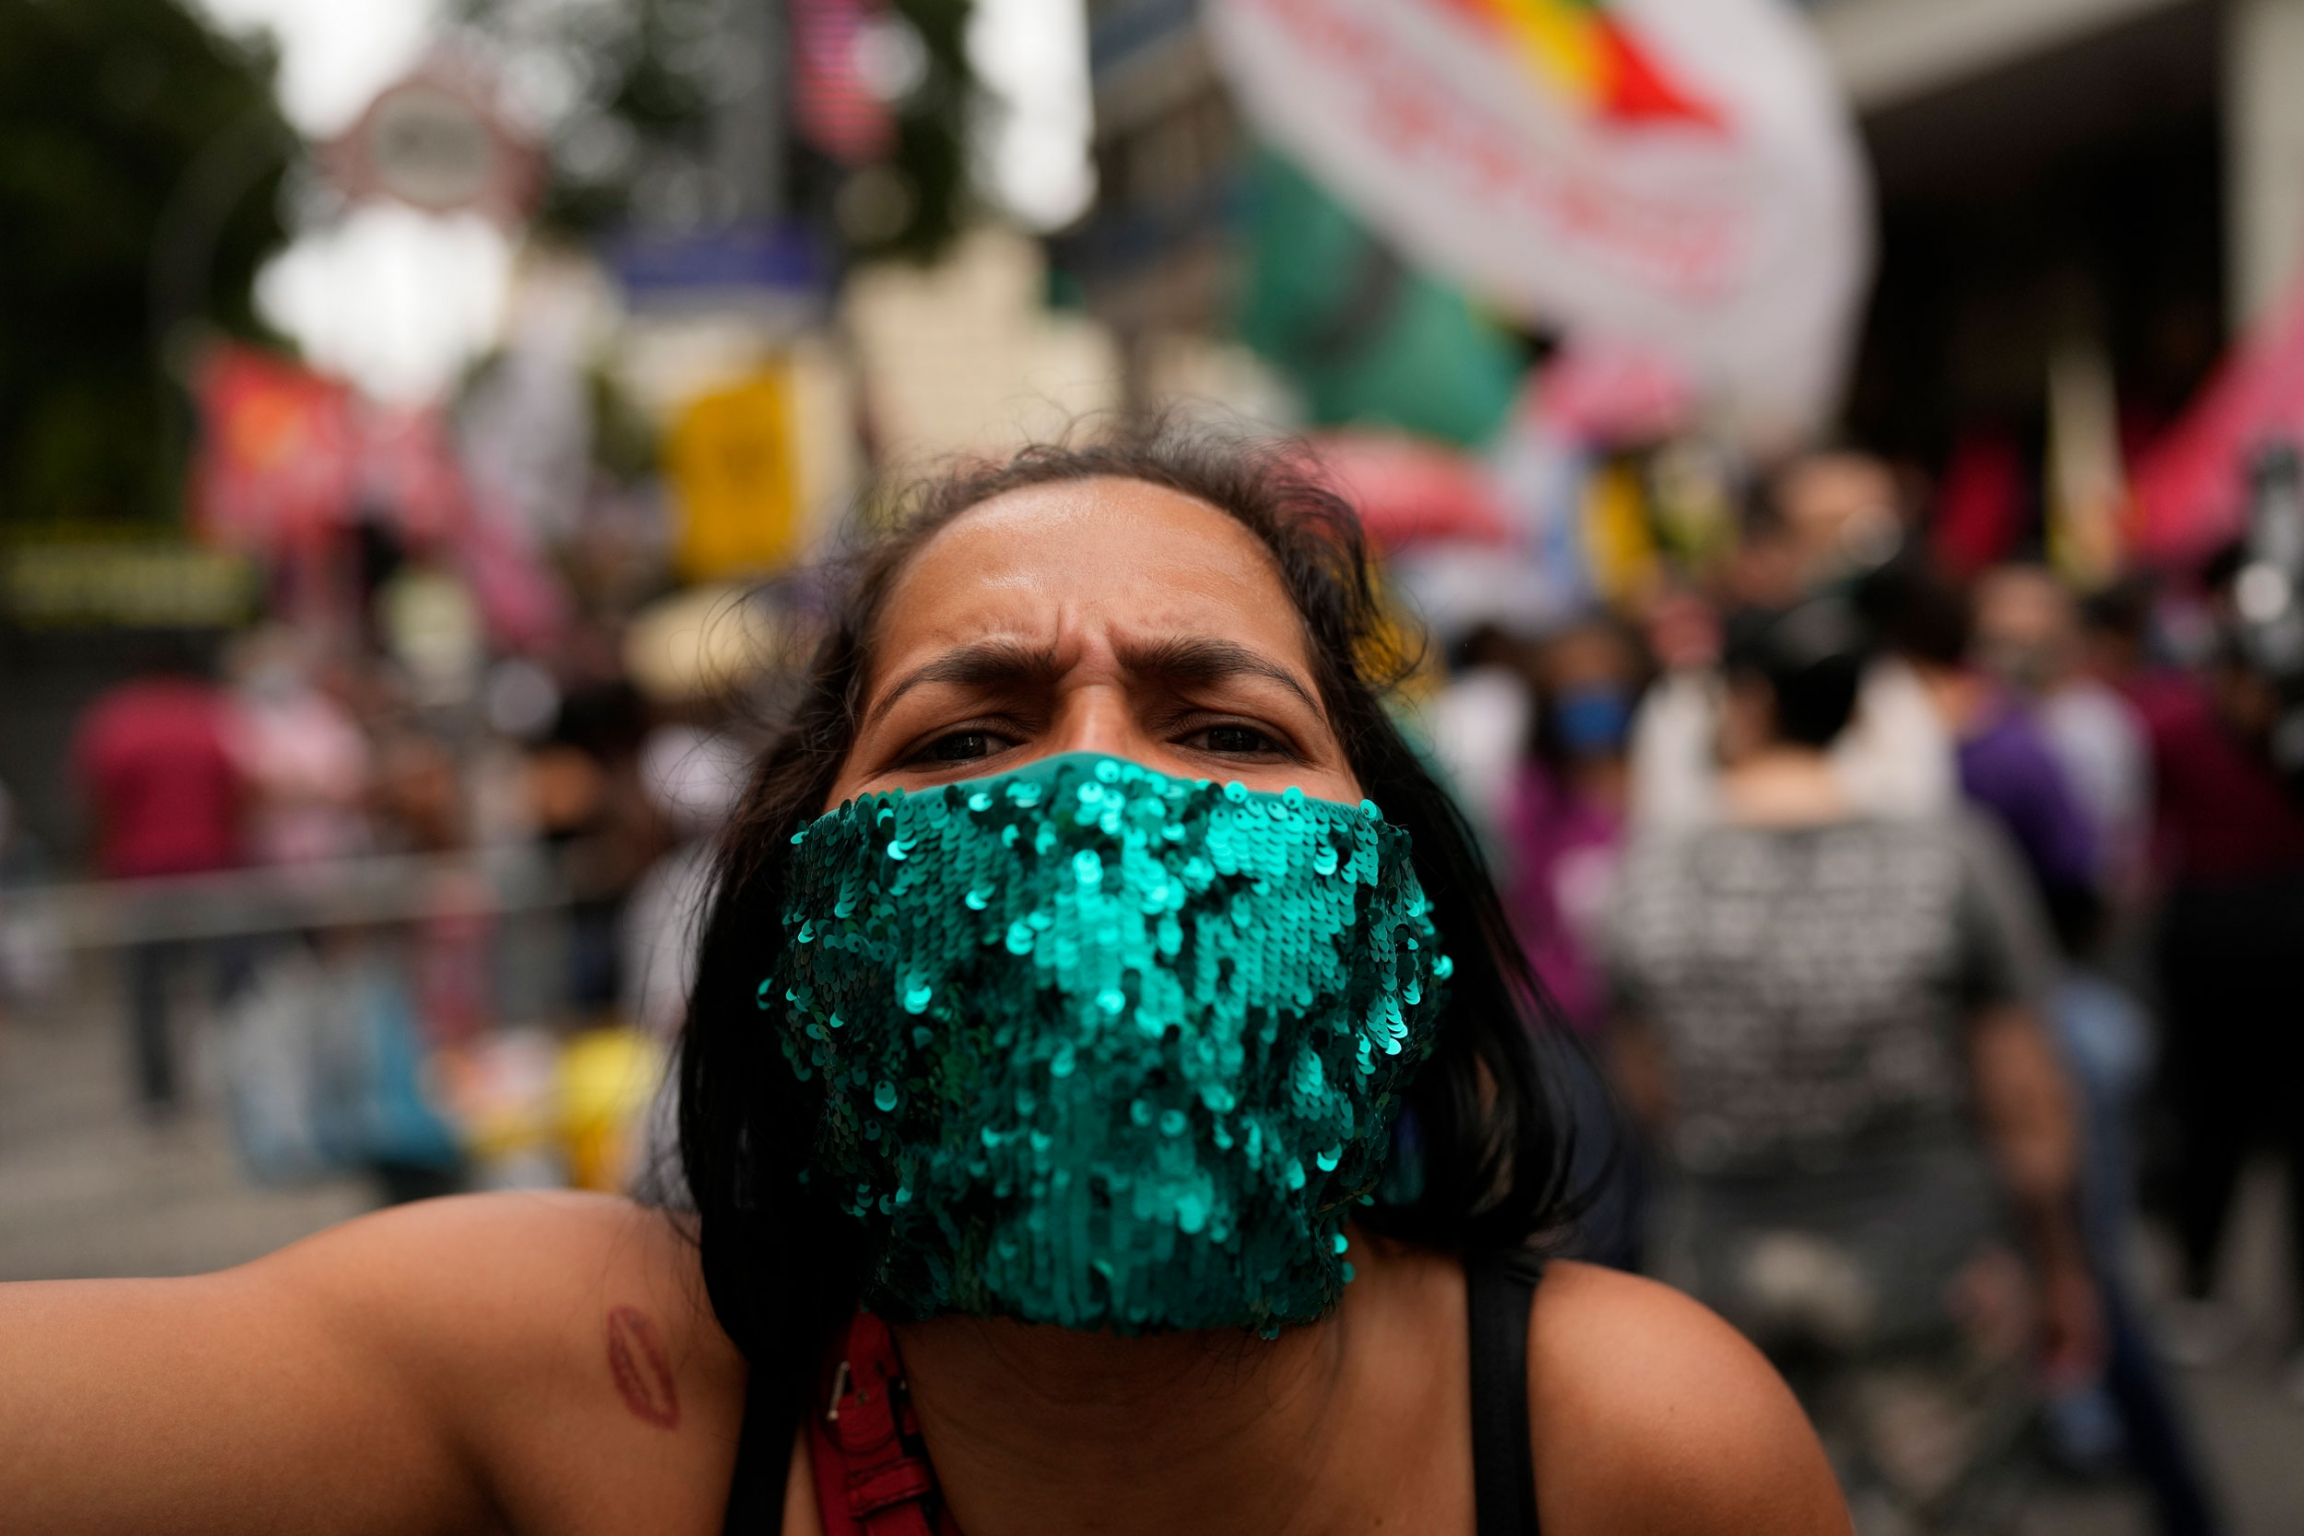 A woman attends a protest against Brazilian President Jair Bolsonaro's handling of the COVID-19 pandemic, the economy and corruption, on Independence Day in Rio de Janeiro, Brazil, Tuesday, Sept. 7, 2021.